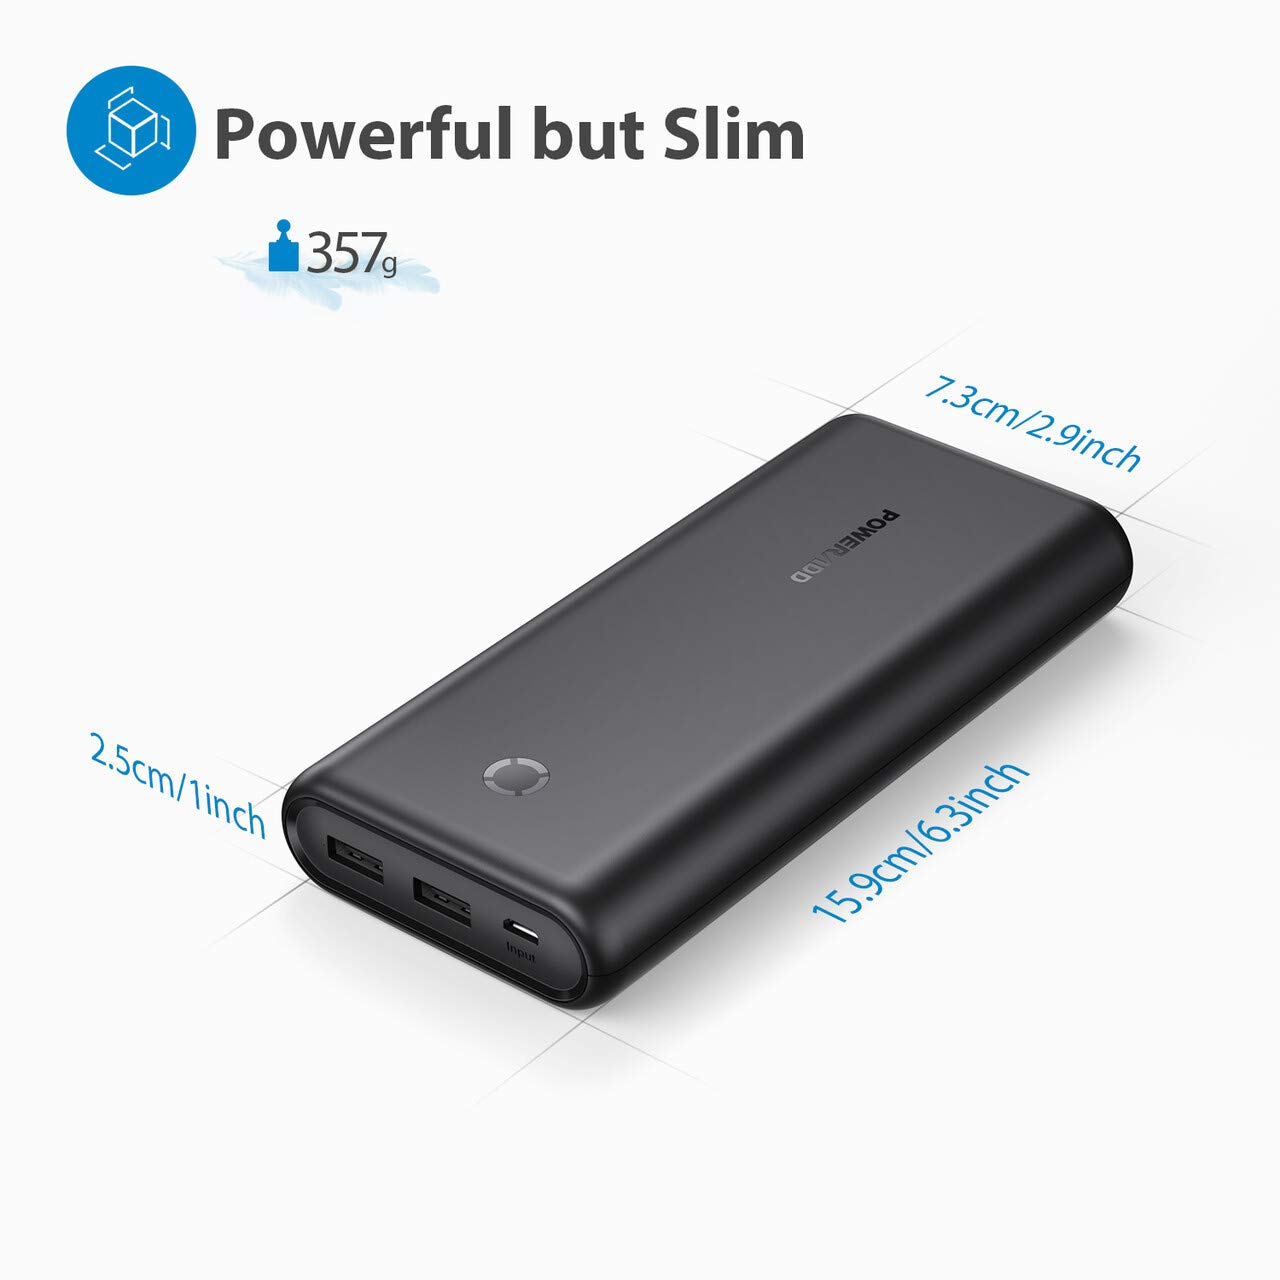 Poweradd Energycell 20000mAh Ultra Portable Charger Universal External Power Bank Compatible with iPhone, iPad, Samsung, Huawei and More-Black